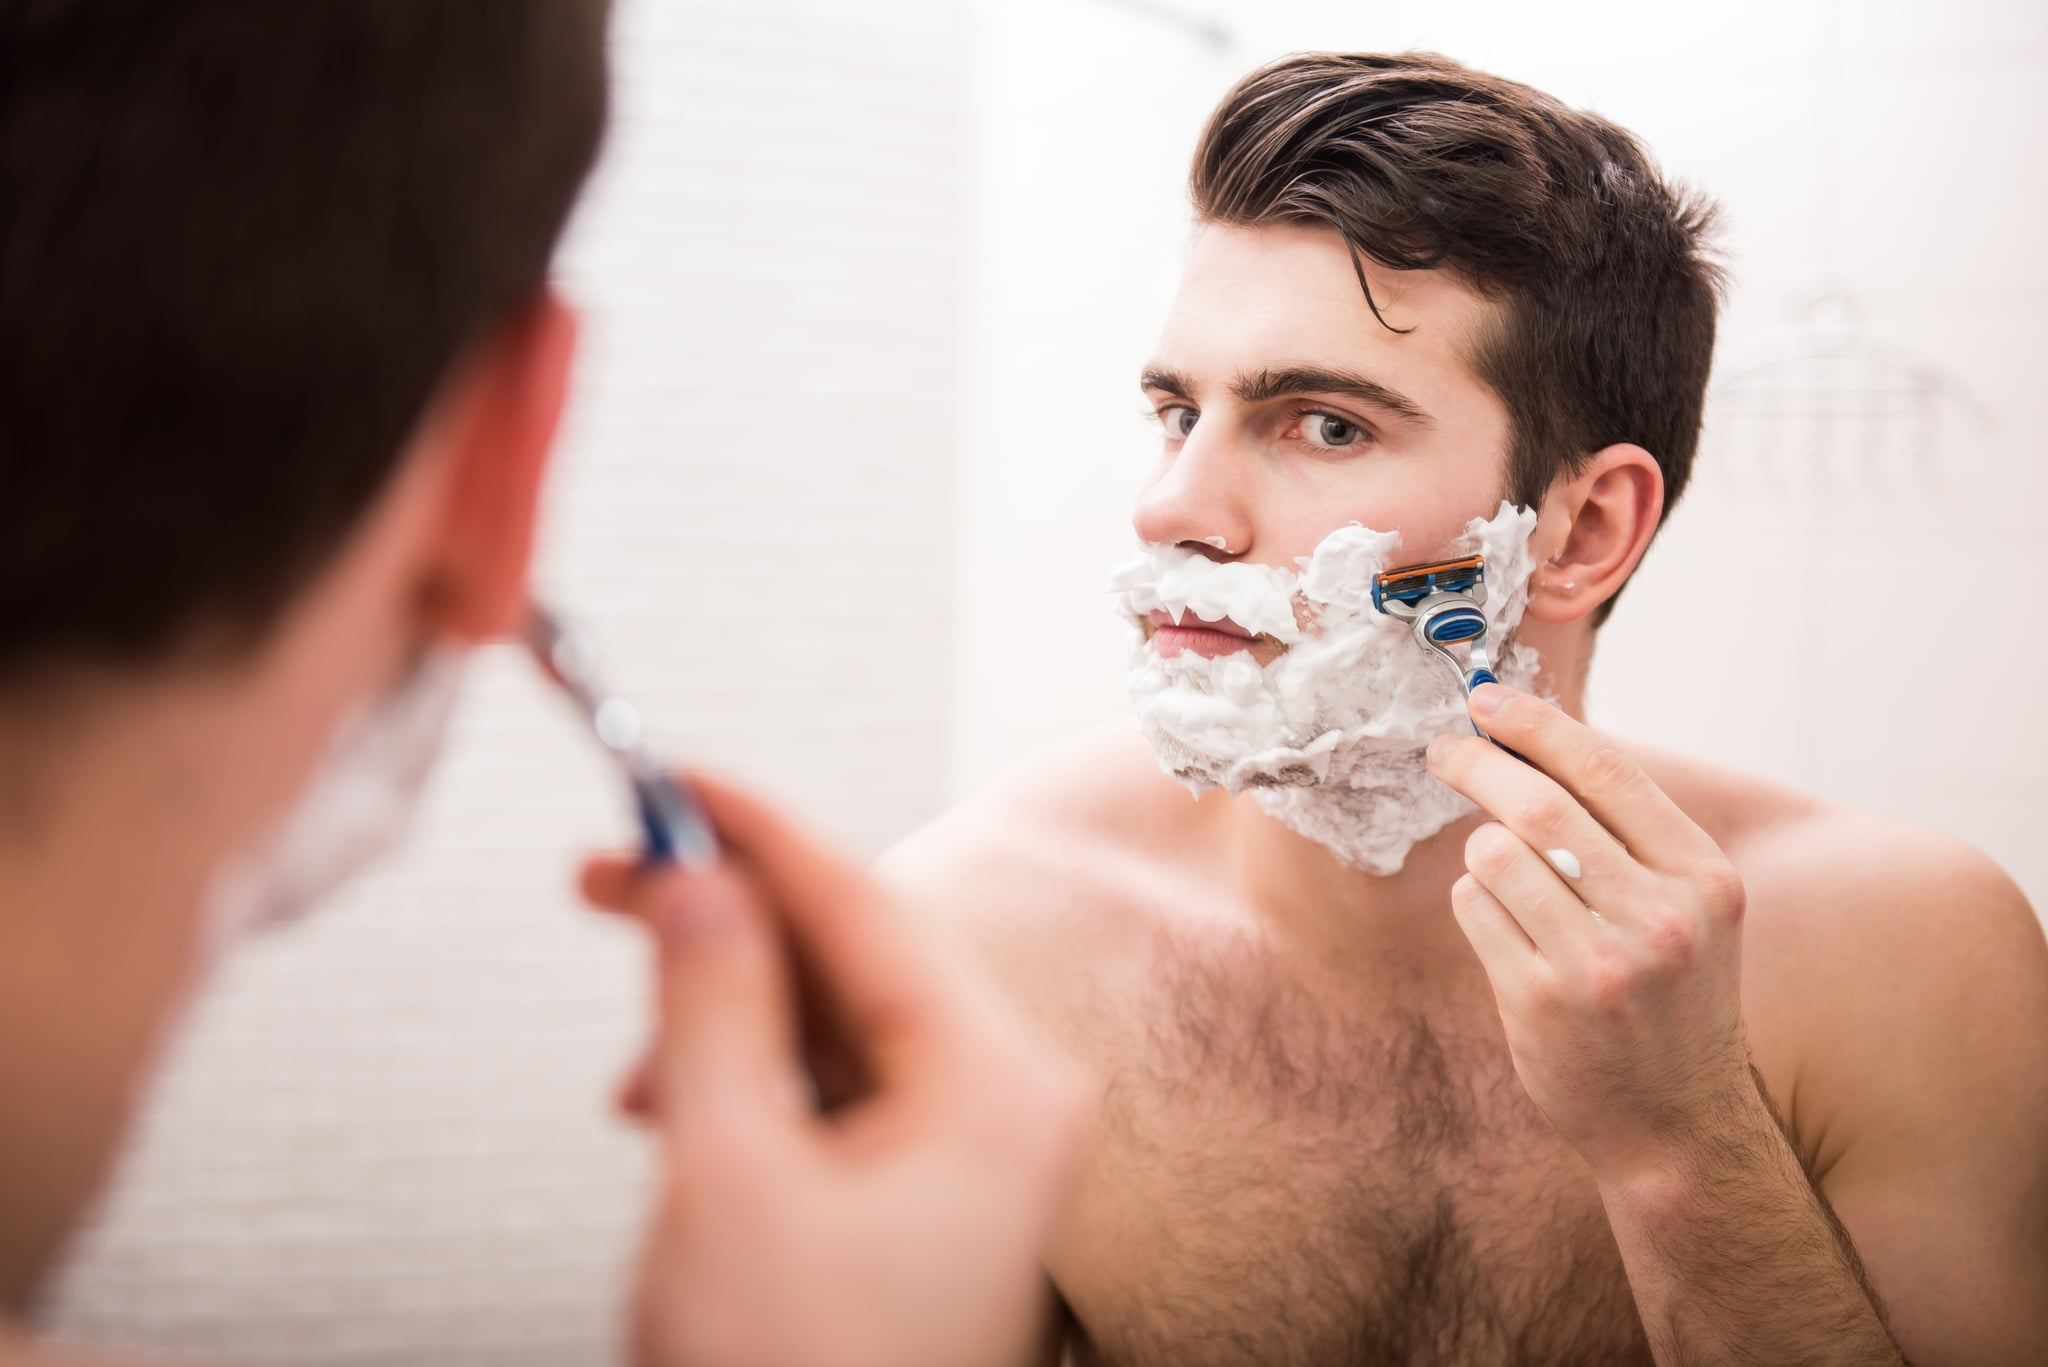 Image result for Cleansing. Before you start cleansing, make sure you get your facial hair trimmed or shaved first